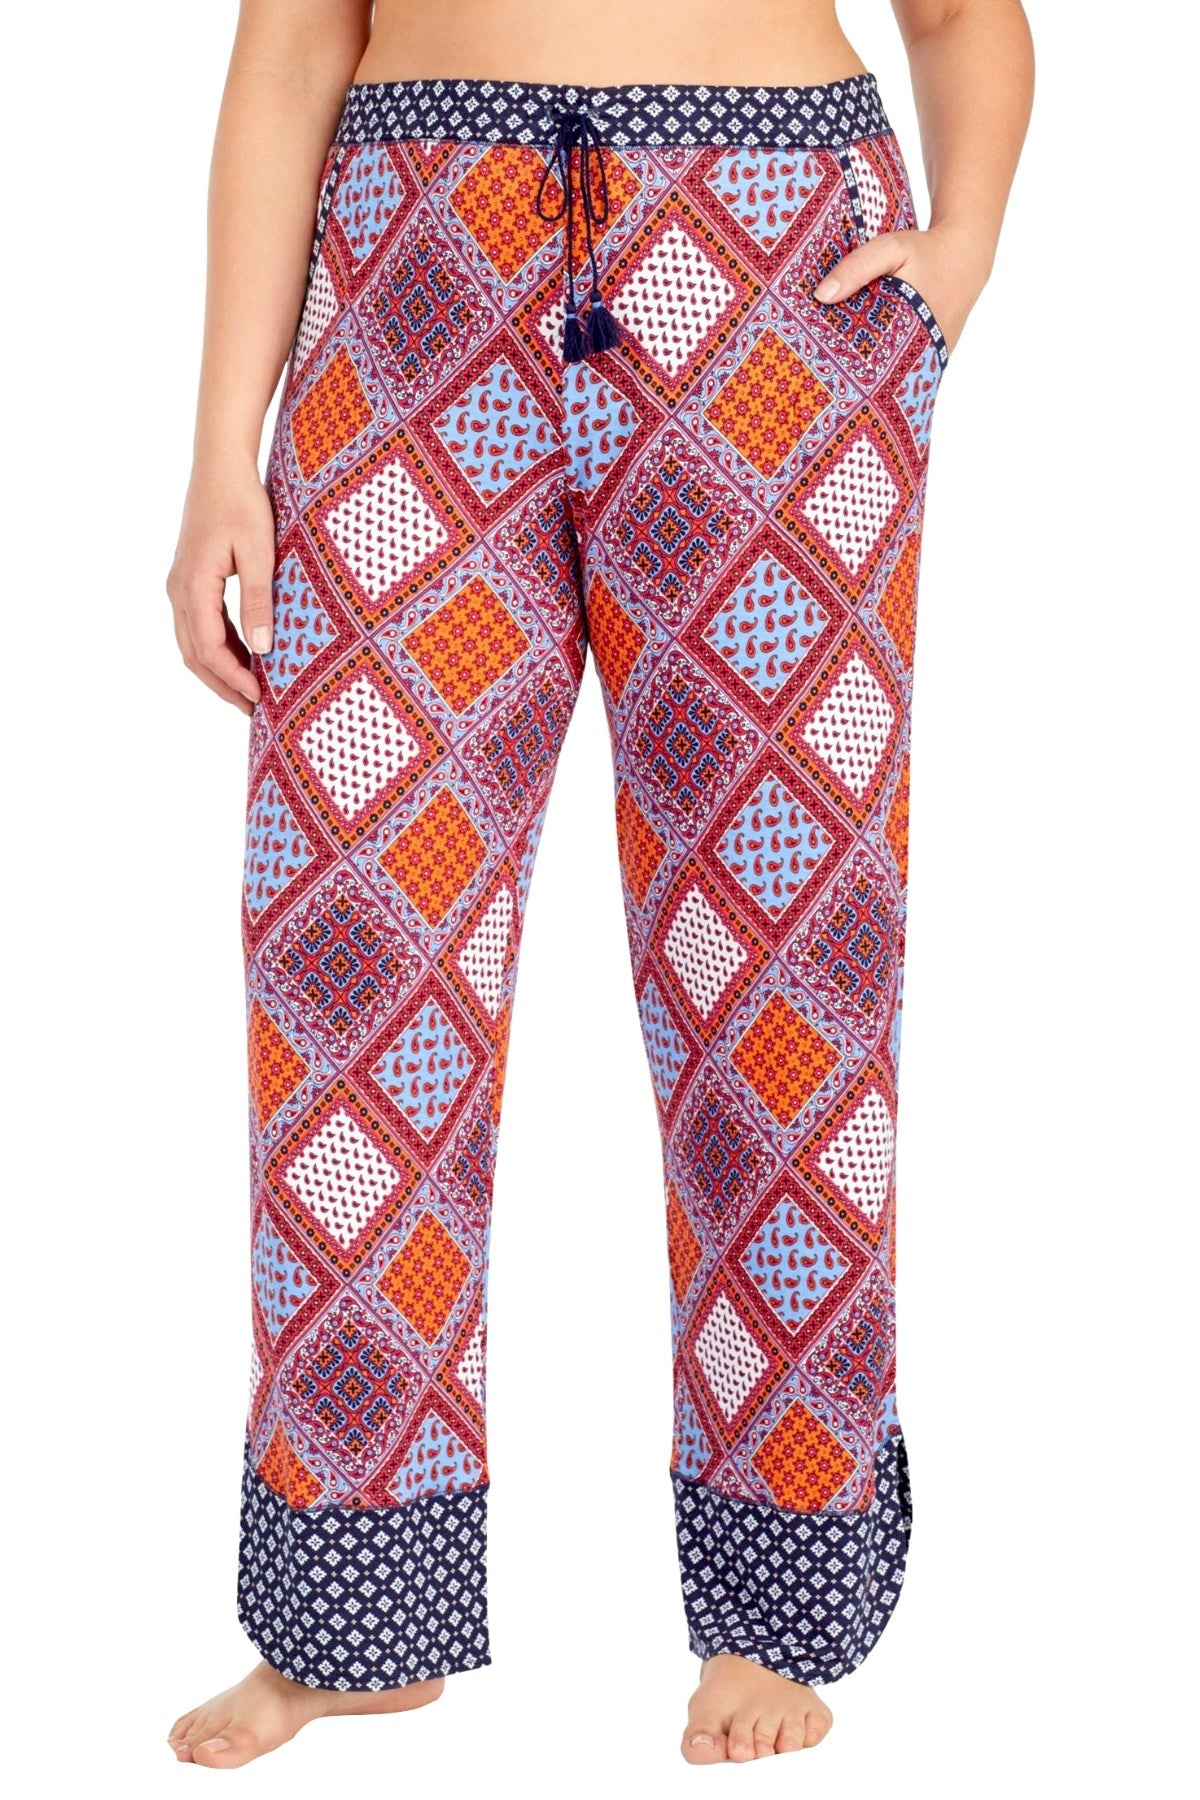 Layla PLUS Red/Multi Printed Drawstring/Tassle Lounge Pant